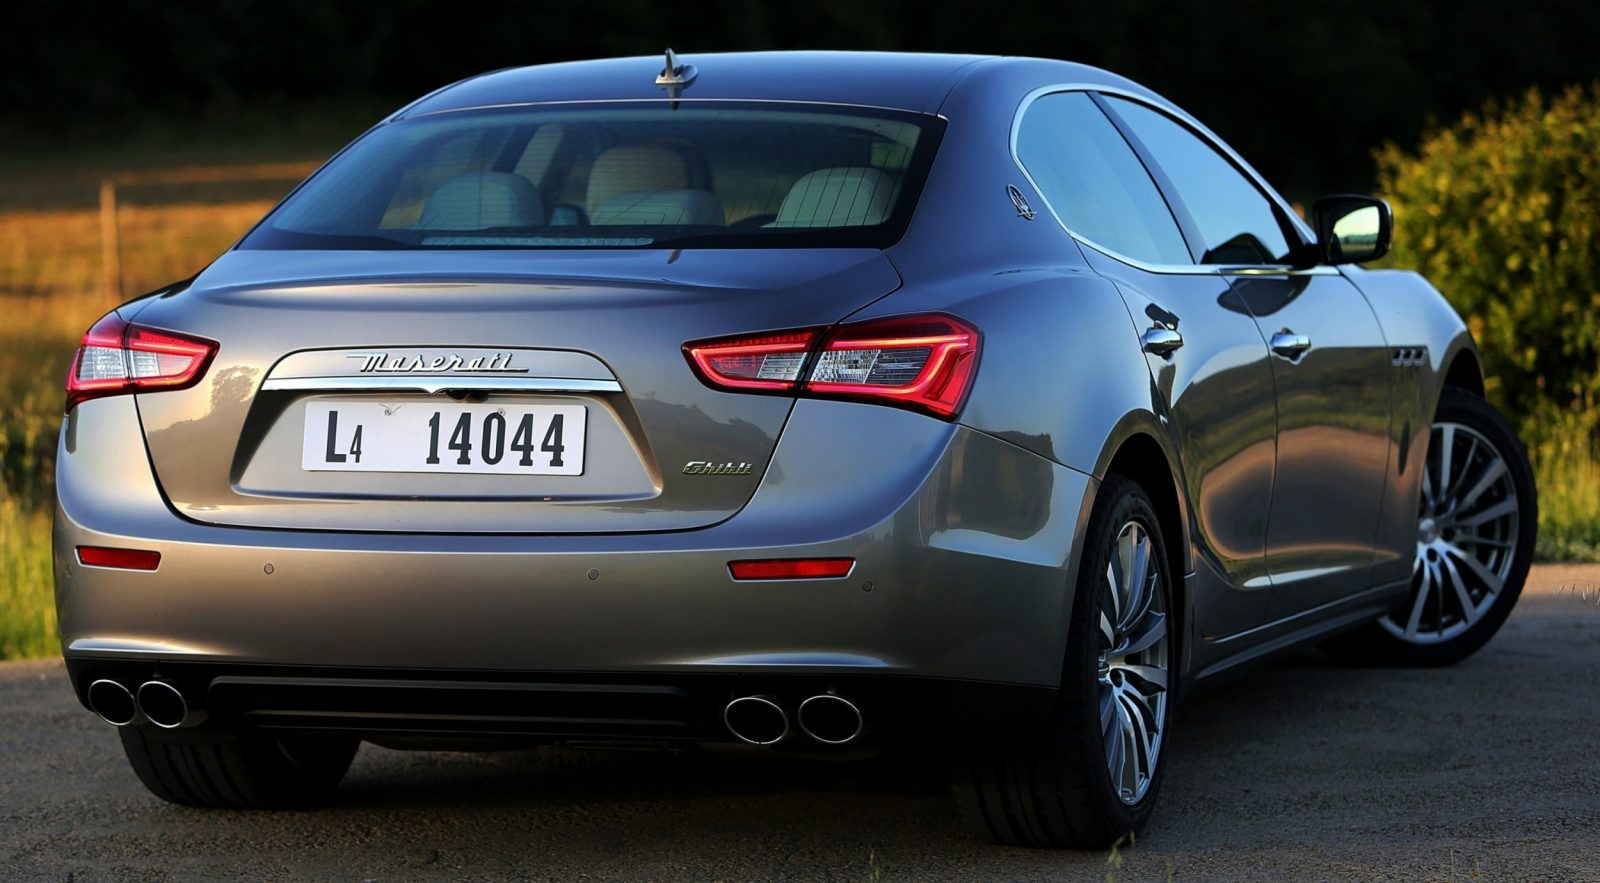 2014 Maserati Ghibli - Latest Official Photos 11